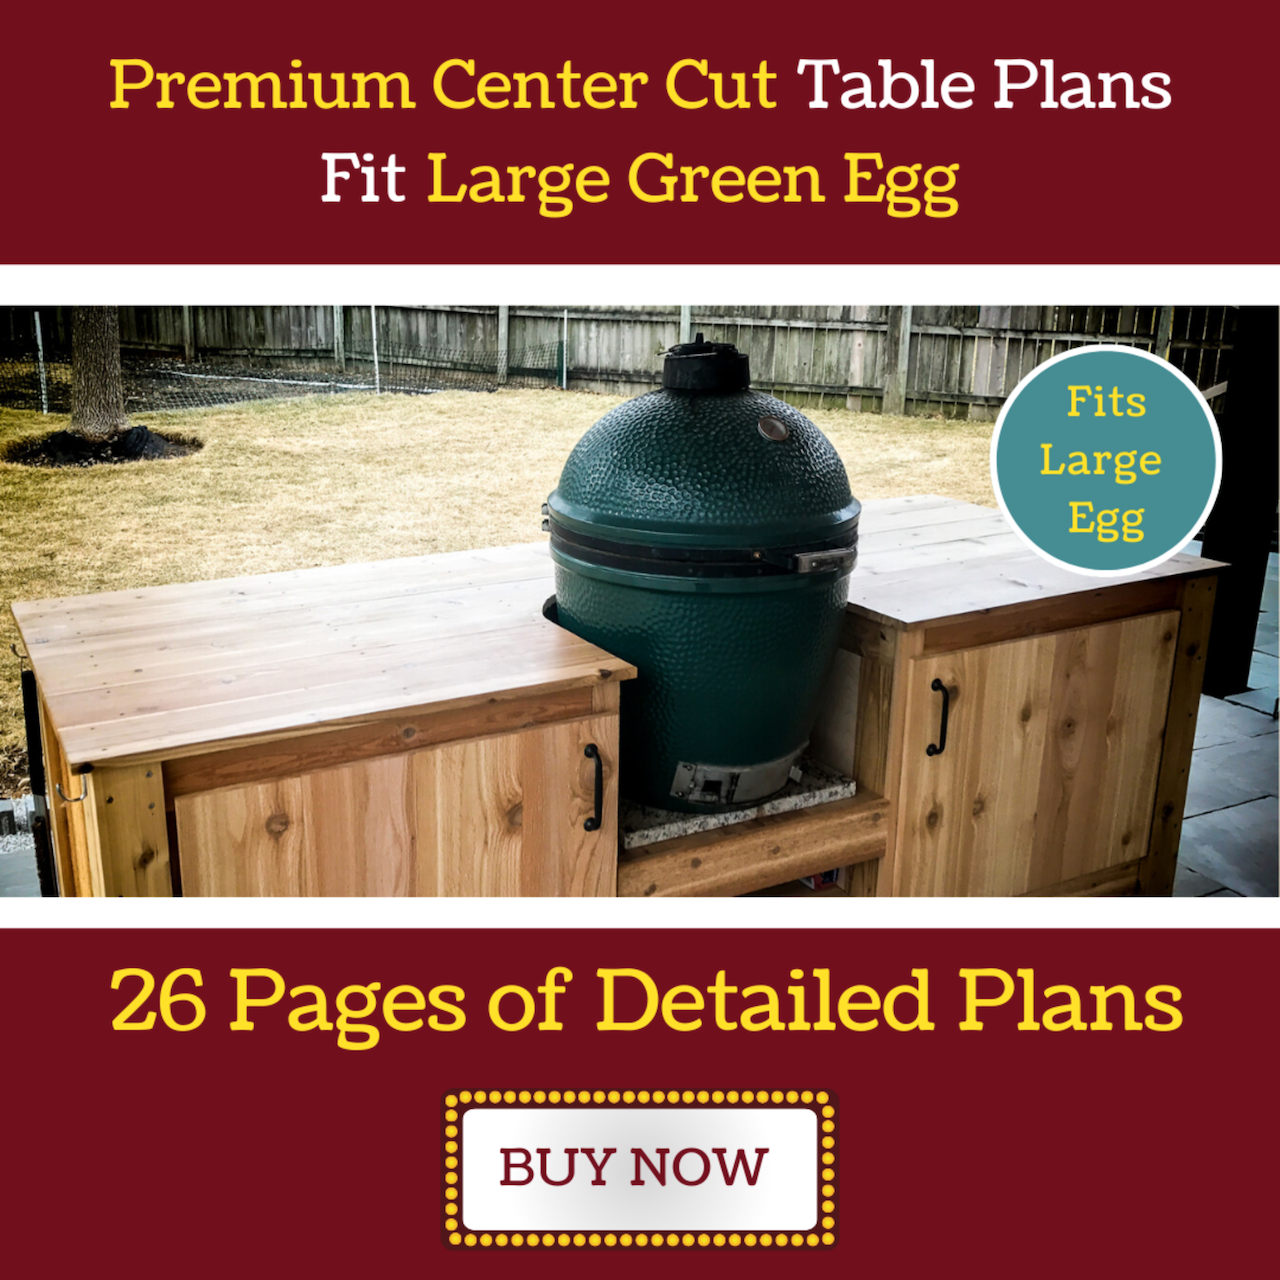 Premium Center Cut Table for Large Green Egg